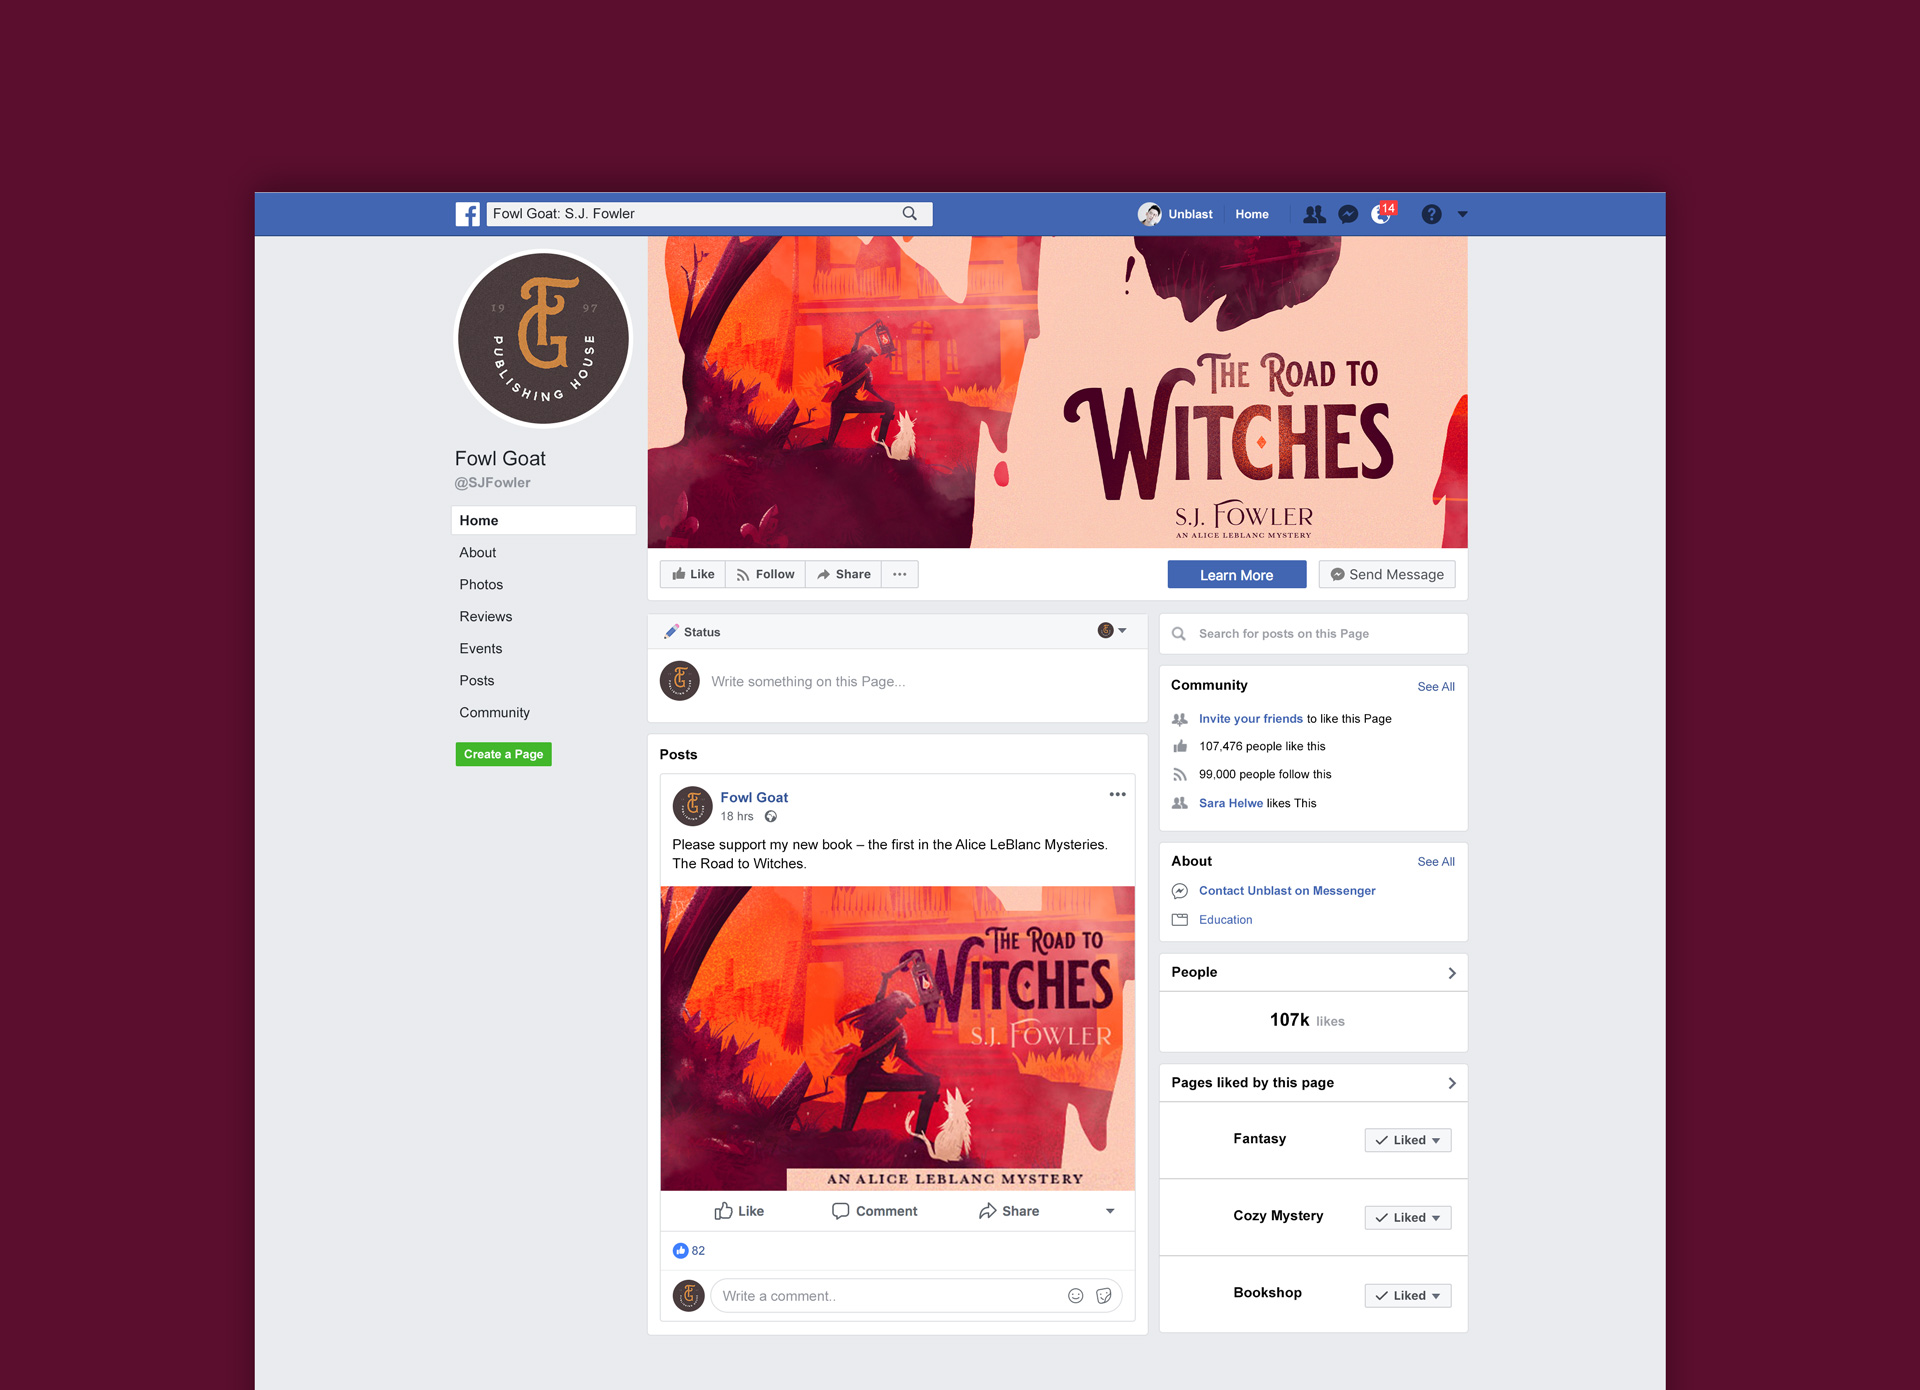 Road to Witches - Facebook